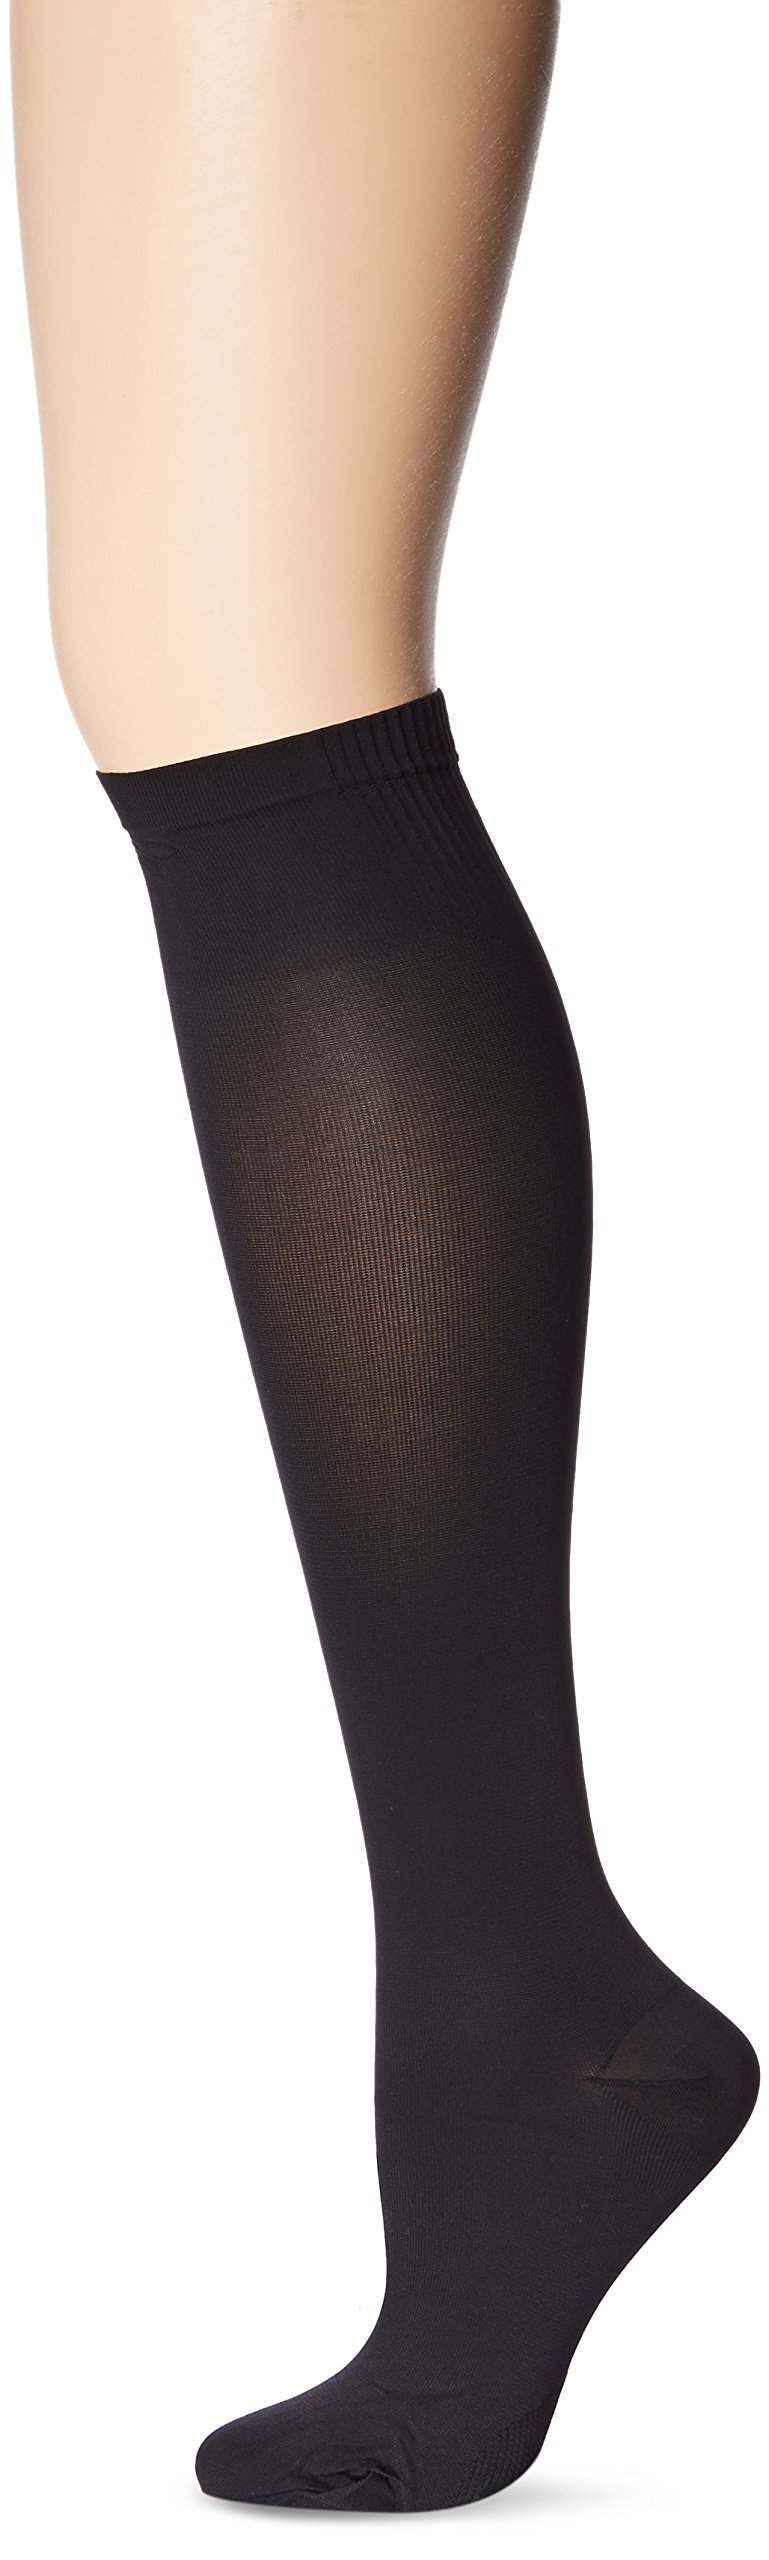 Pretty Polly Women's On-The-Go Compression Travel Sock